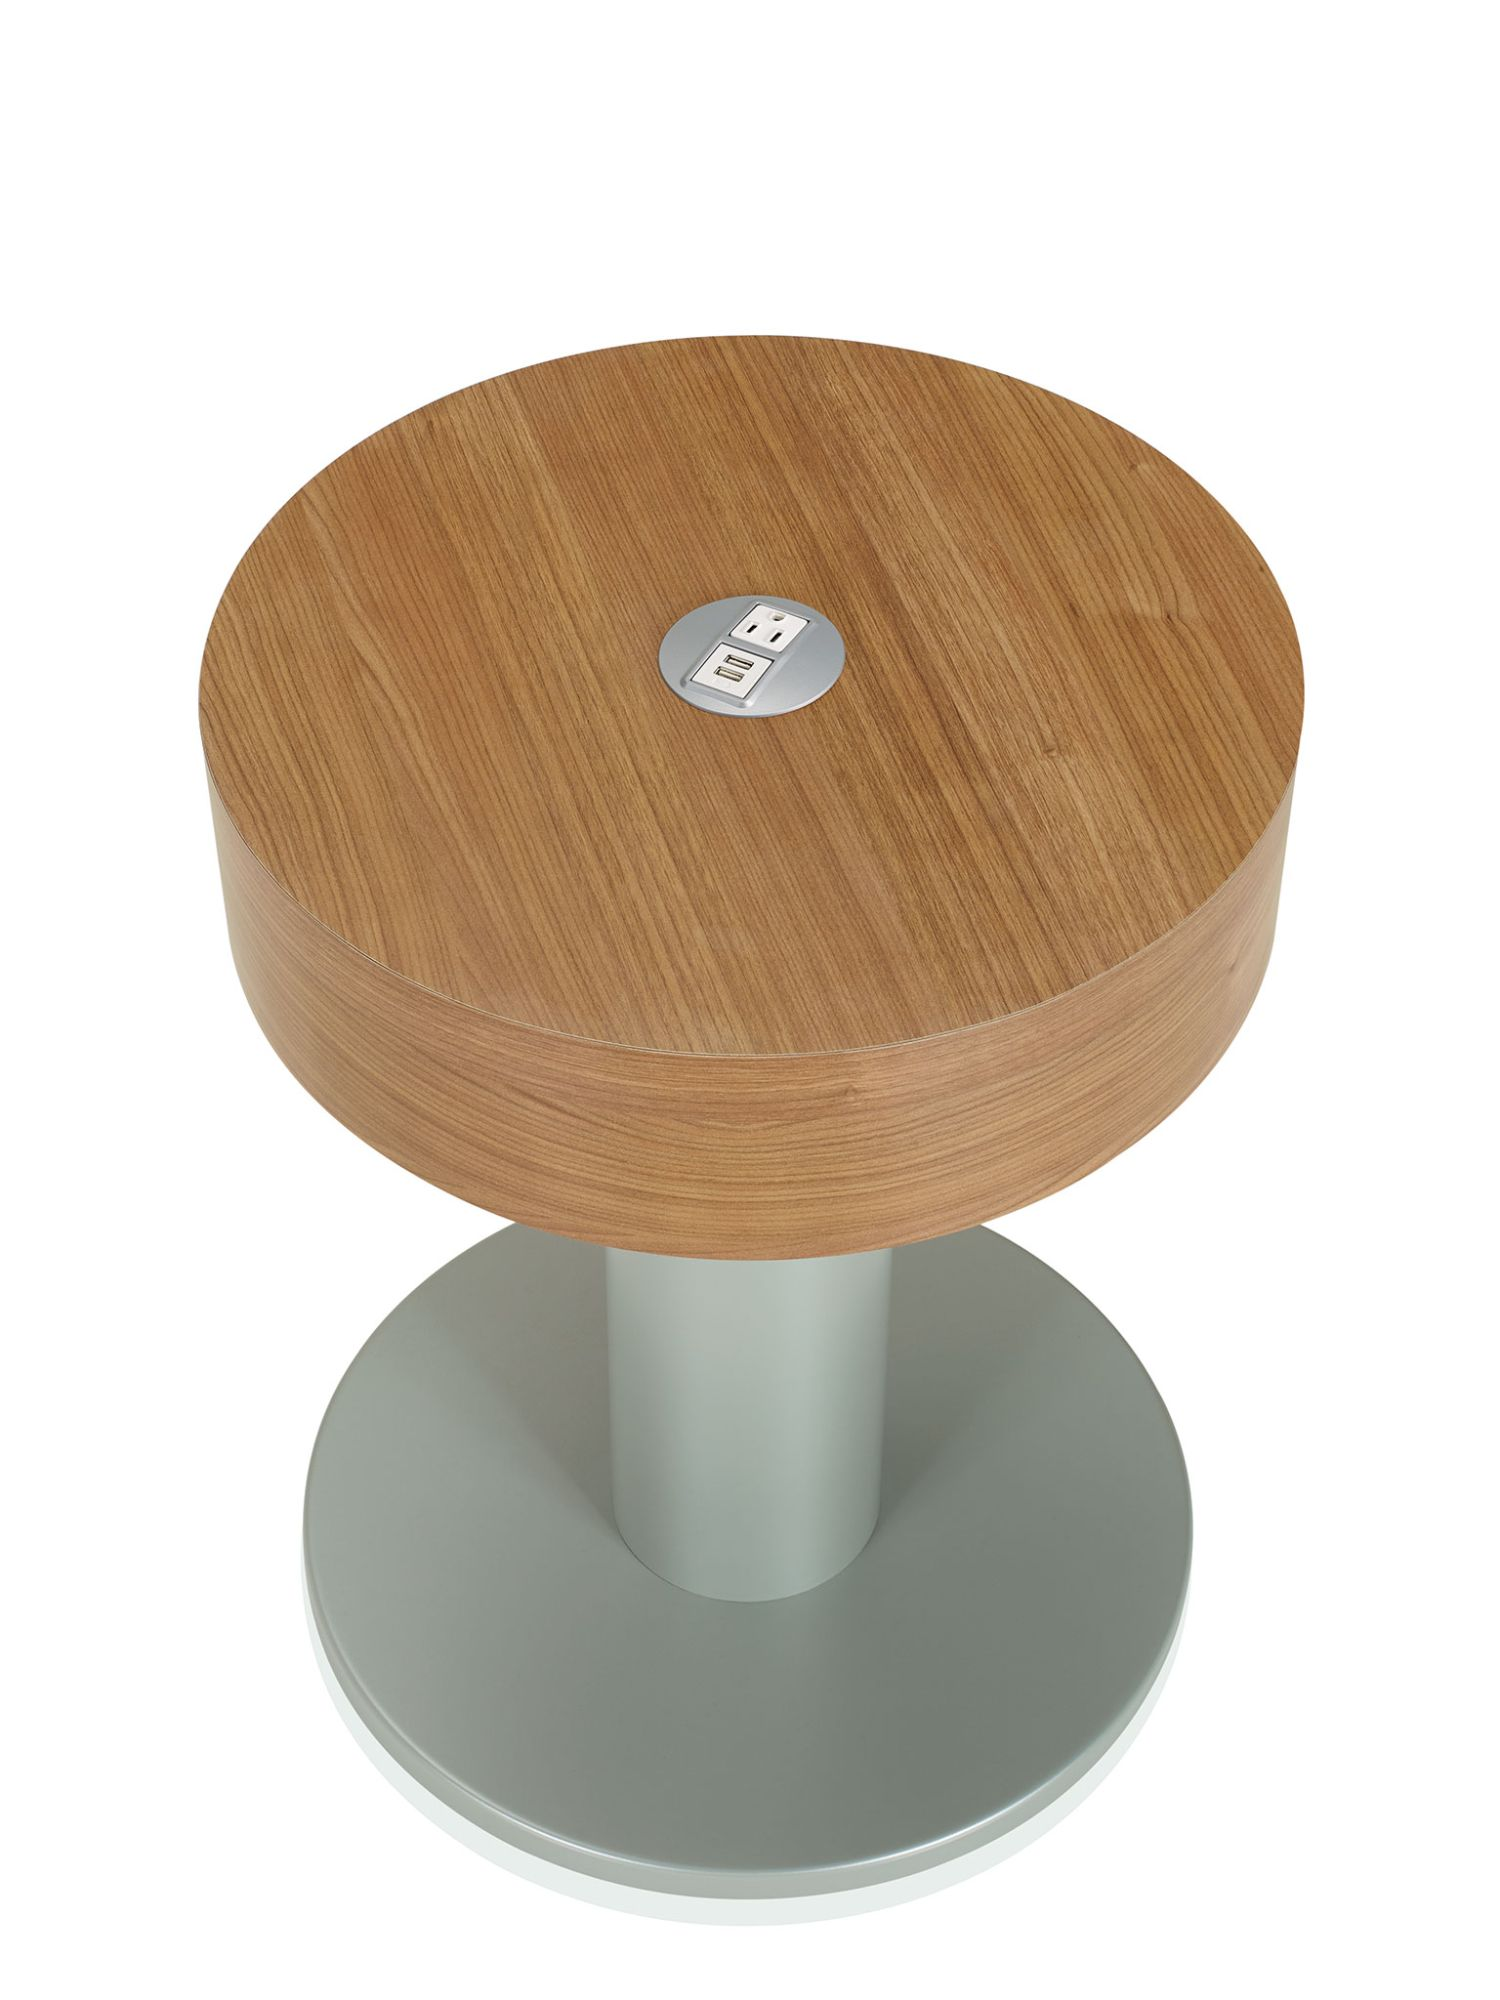 ki hub docking table